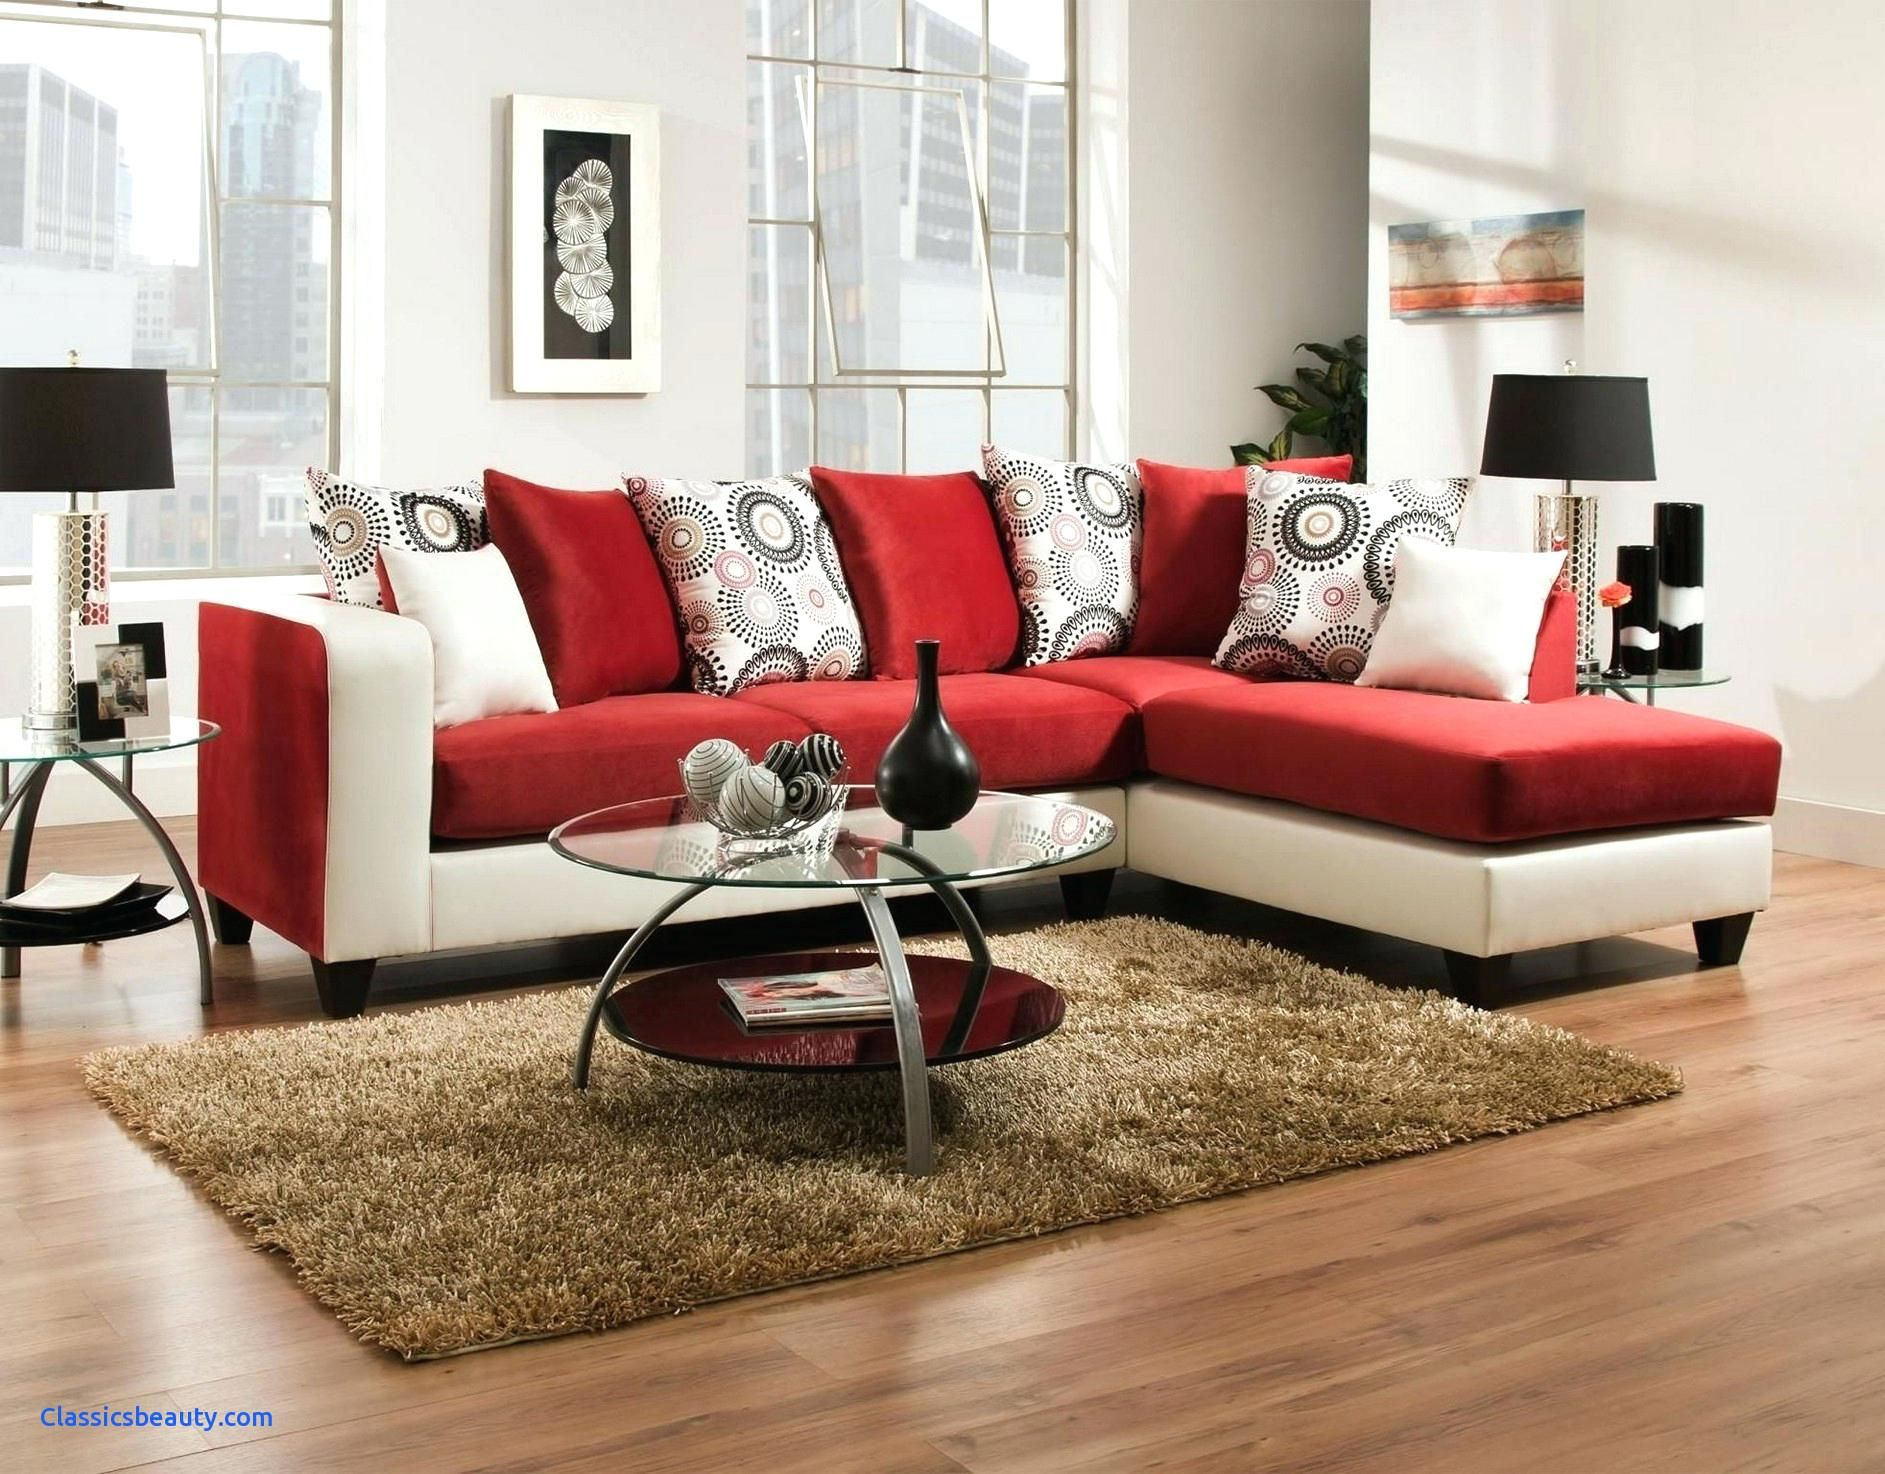 Cheap Living Room Furniture Sets In Atlanta Ga Cheap Living Room Furniture Living Room Red Black And Red Living Room